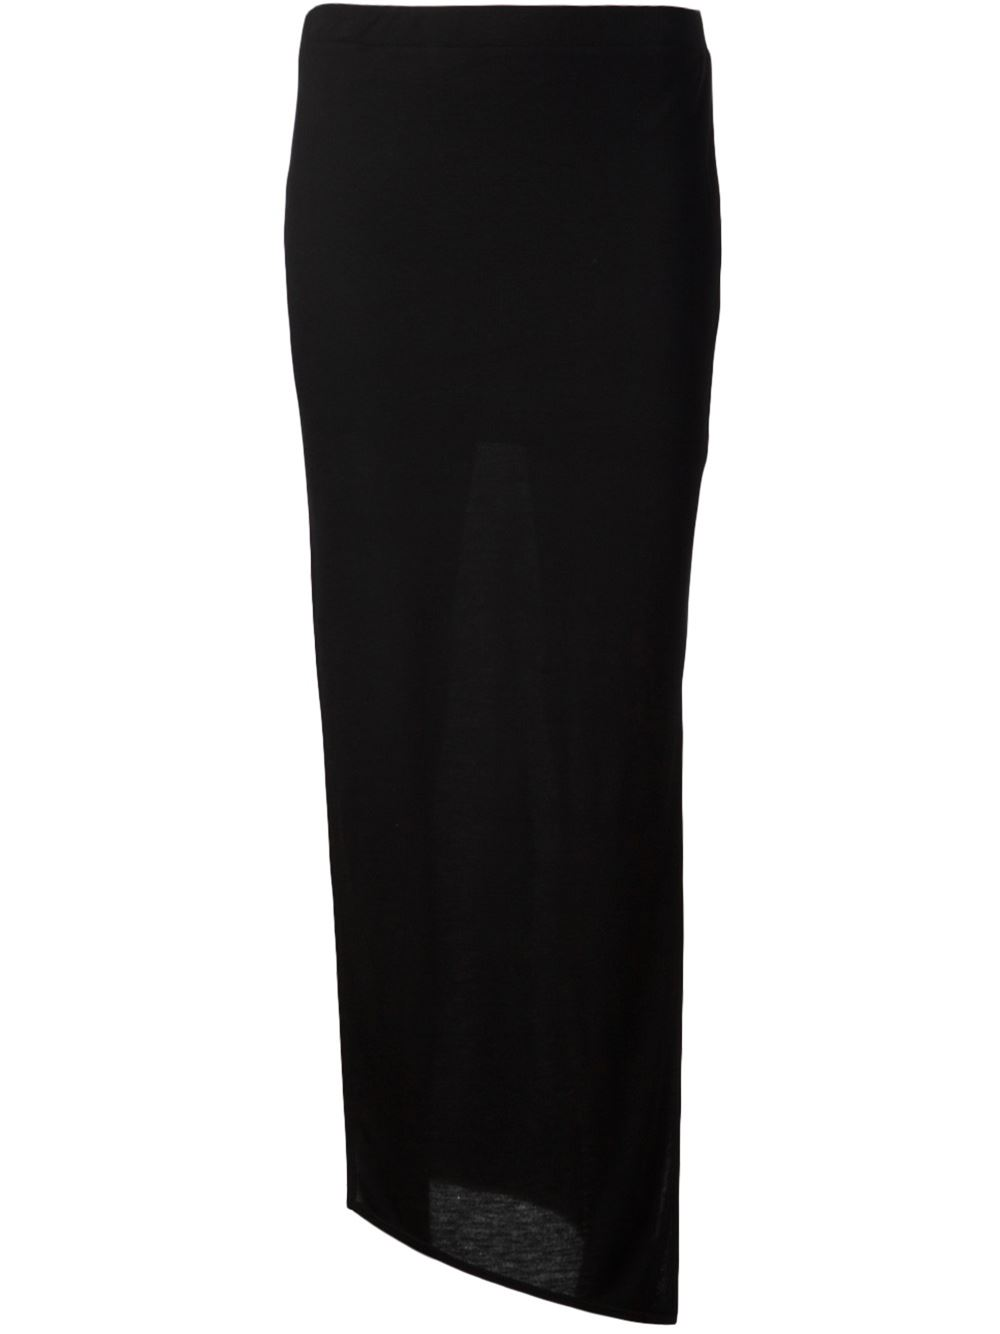 Helmut Lang Draped Skirt - Smets - Farfetch.com